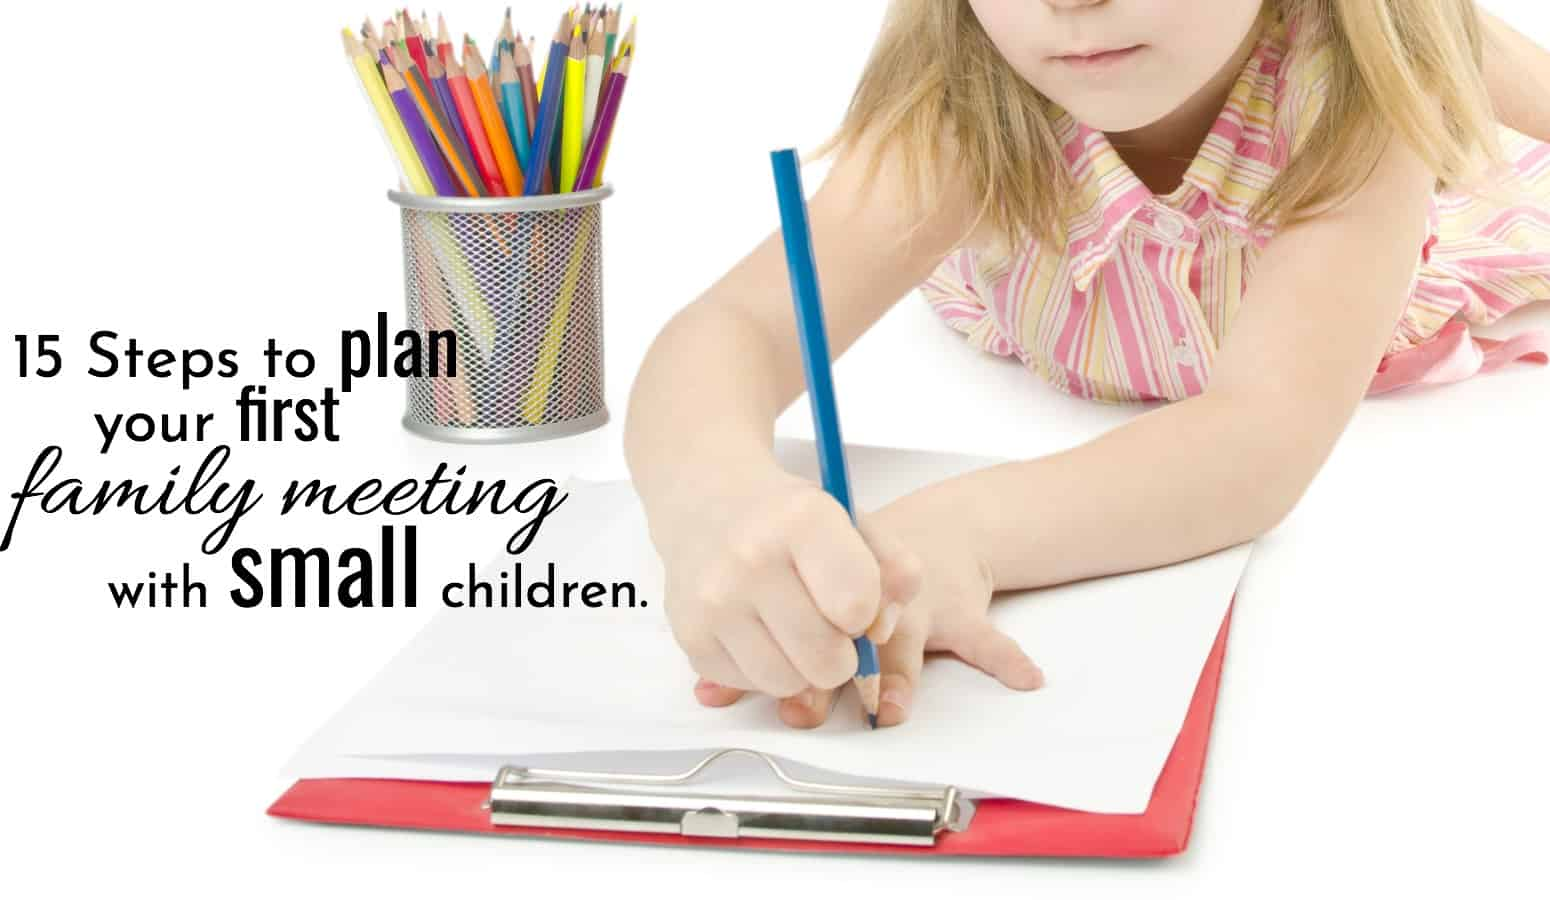 15 steps to plan your first family meeting with small children. little girl with notebook and colored pencils.